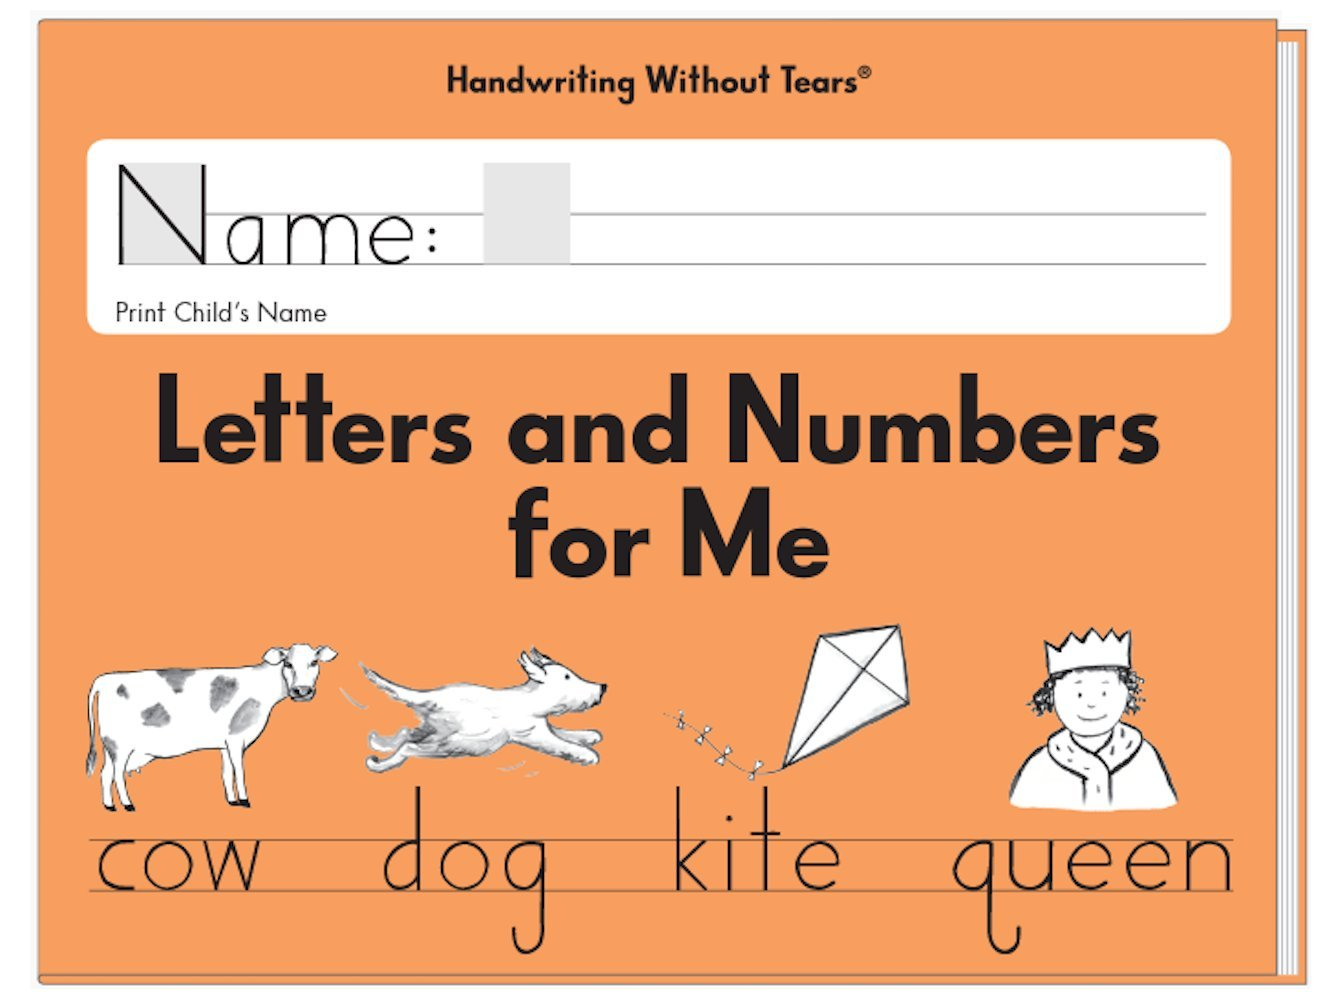 Worksheets Handwriting Without Tears Worksheet letters and numbers for me jan olsen 9781891627576 amazon com books